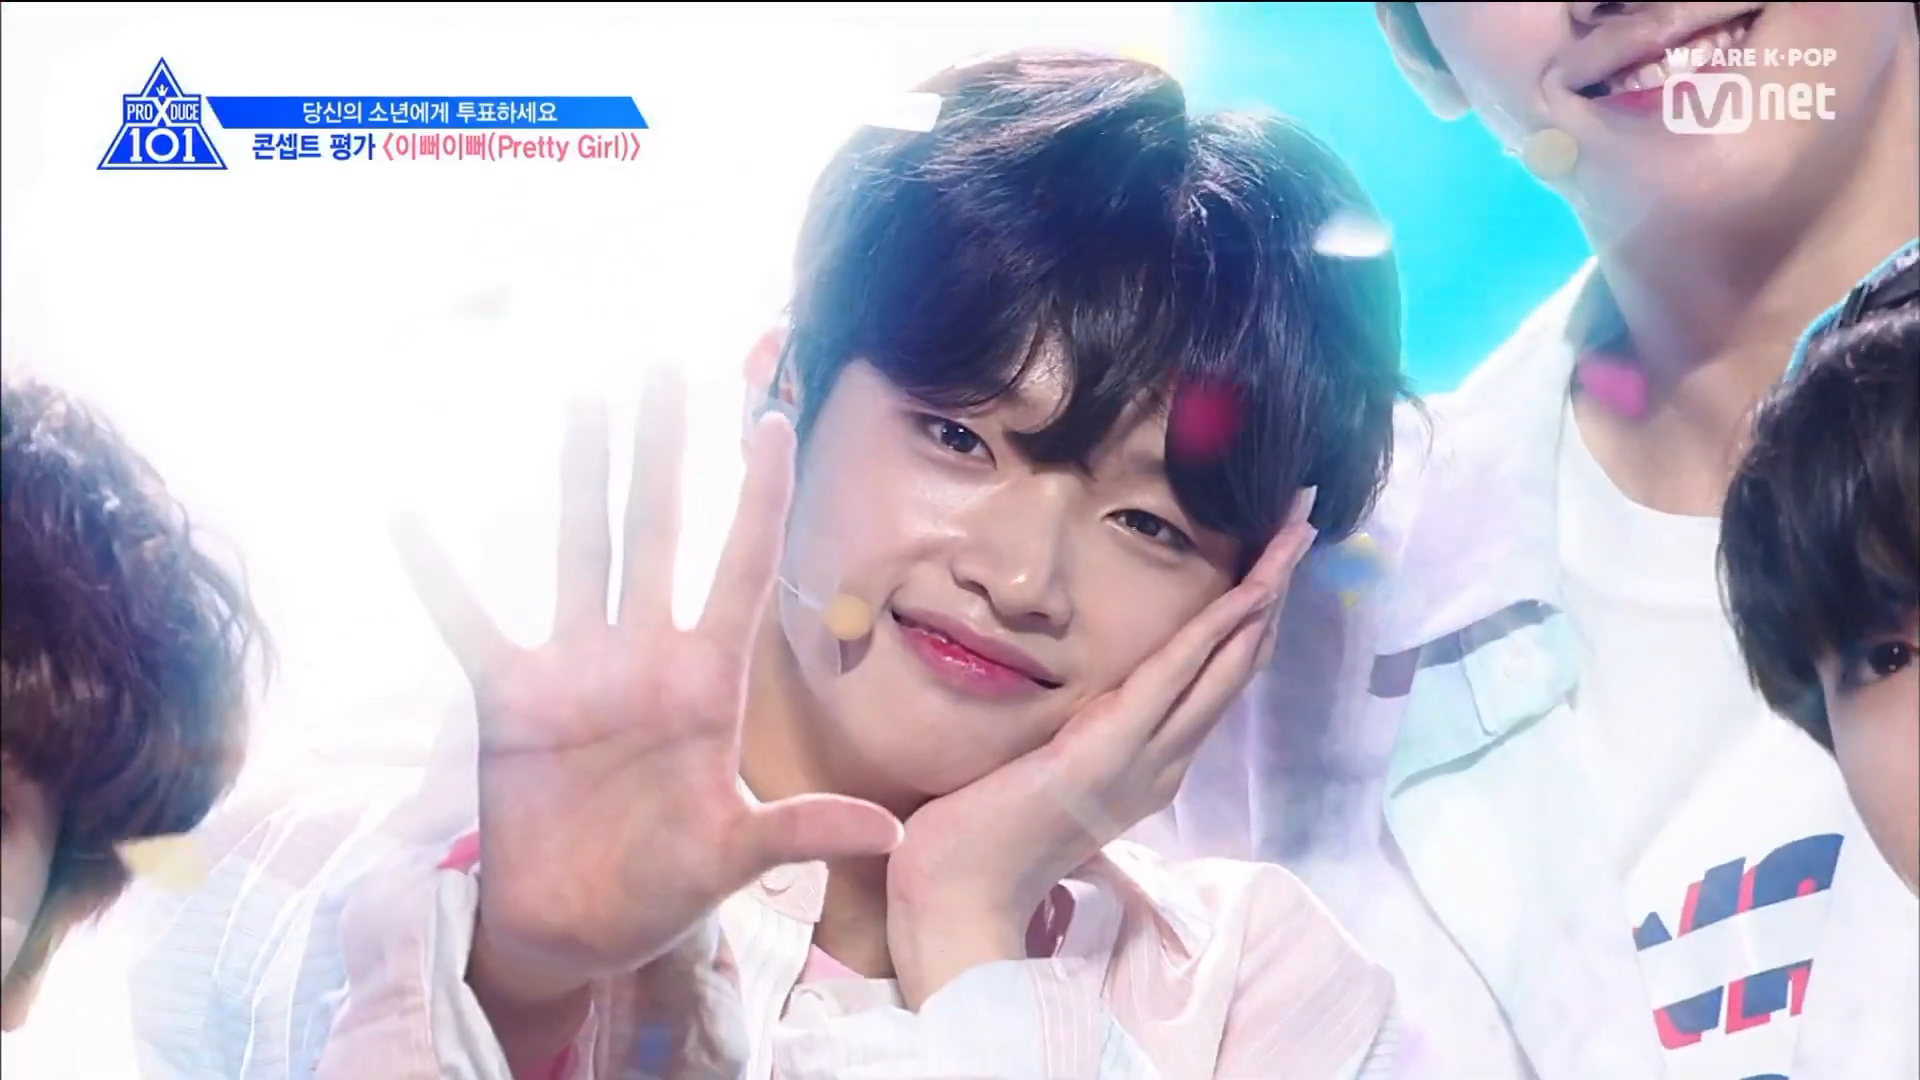 Son Dong-pyo's Produce x 101 Performances